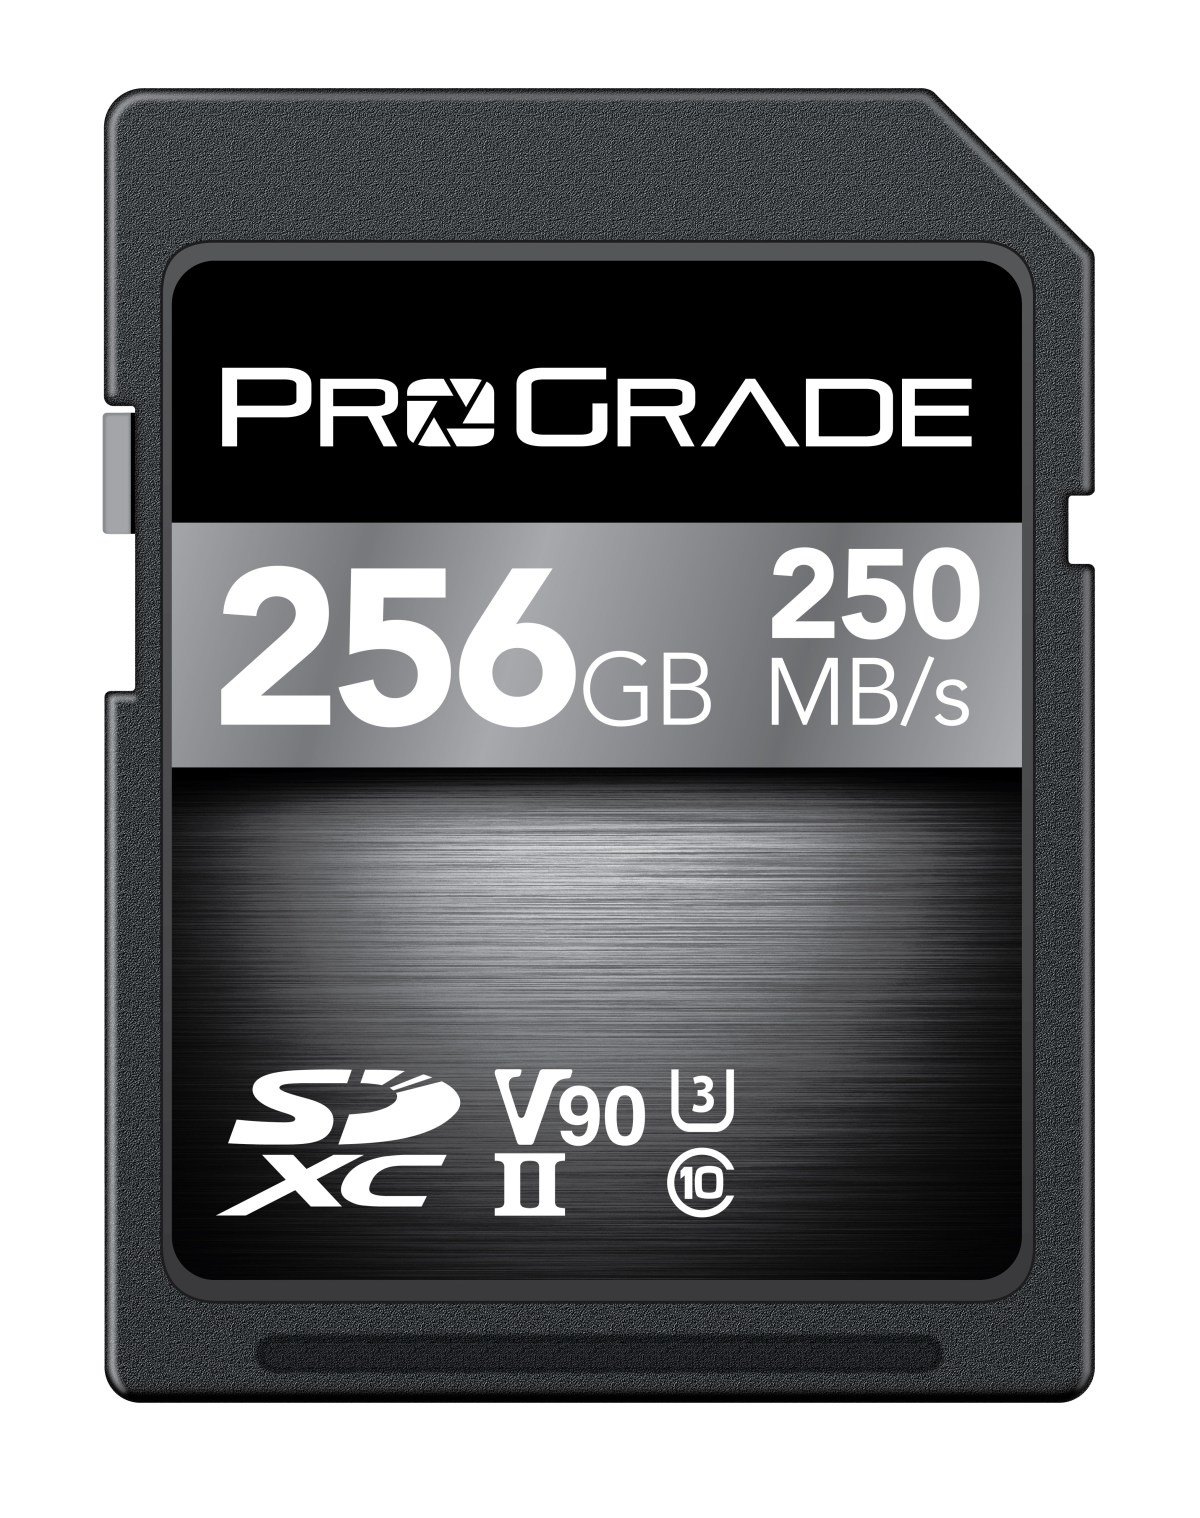 ProGrade Digital announces V90 premium line memory cards—sustained read up to 250MB/second, sustained write up to 200MB/second. ProGrade Digital SDXC UHS-II, U3, Class 10, V90 brings peak performance to DSLR, mirrorless, camcorder and digital cinema that produce incredibly rich data streams and require more from a memory card.